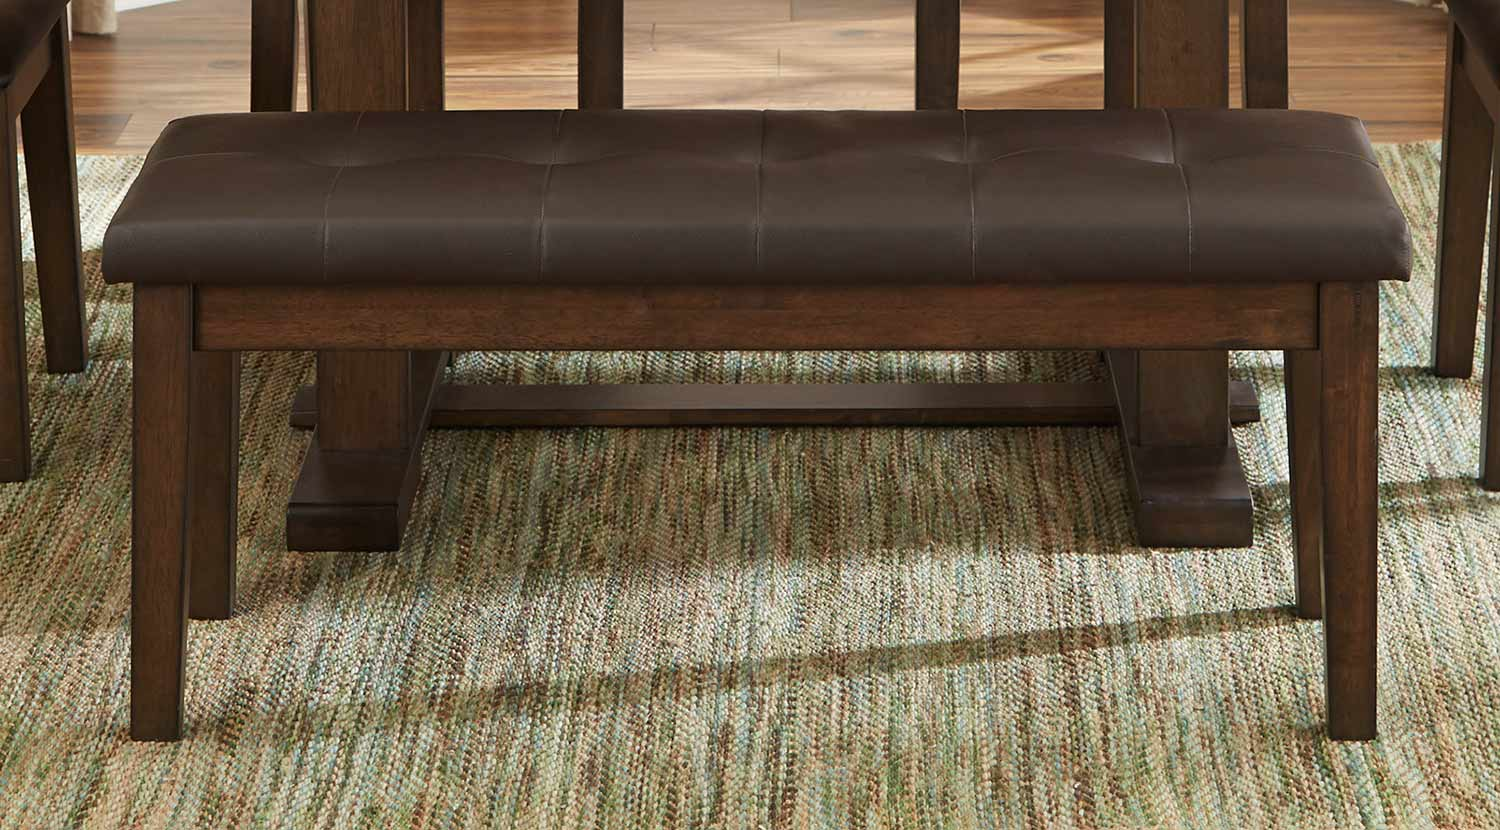 Homelegance Wieland Bench - Light Rustic Brown